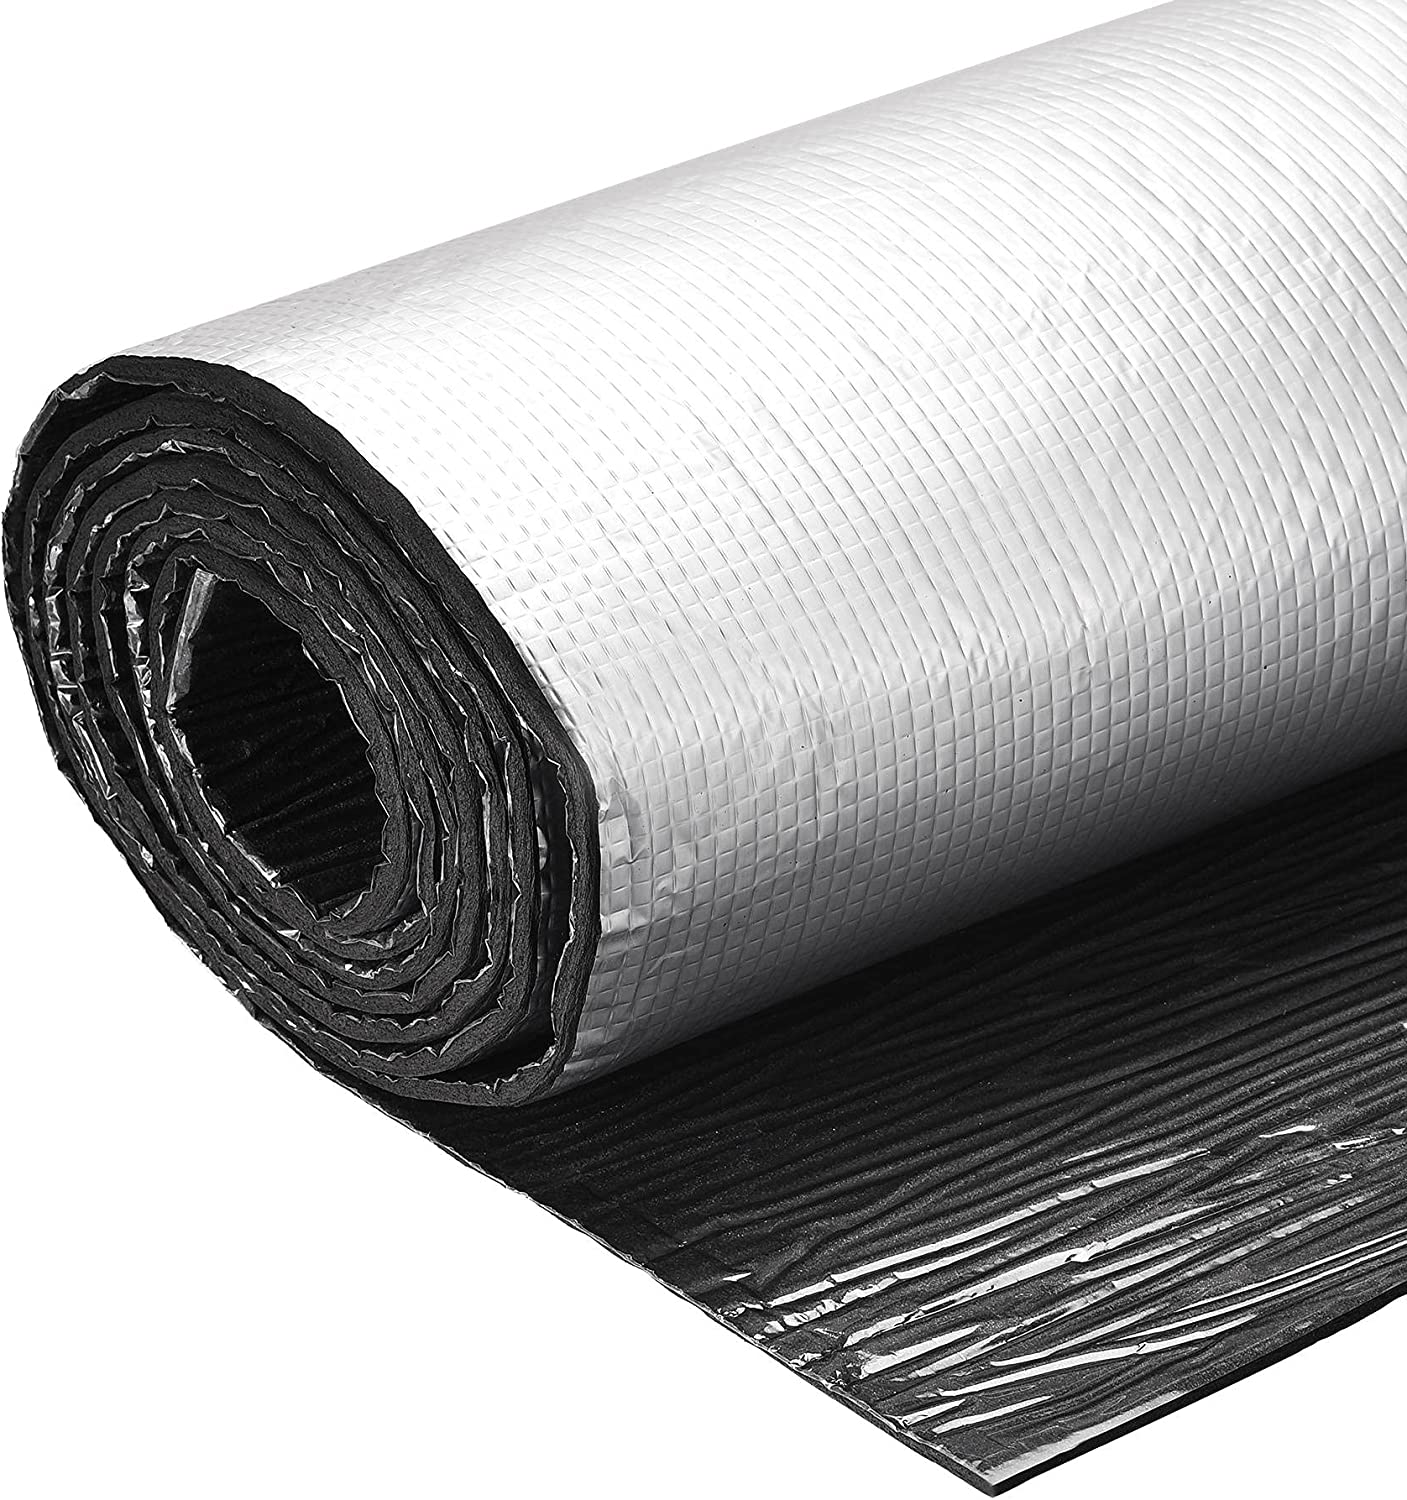 uxcell New product! New type Insulation Sheet Embossed Baltimore Mall 3meterx0.5mx5mm Self-Adhesive